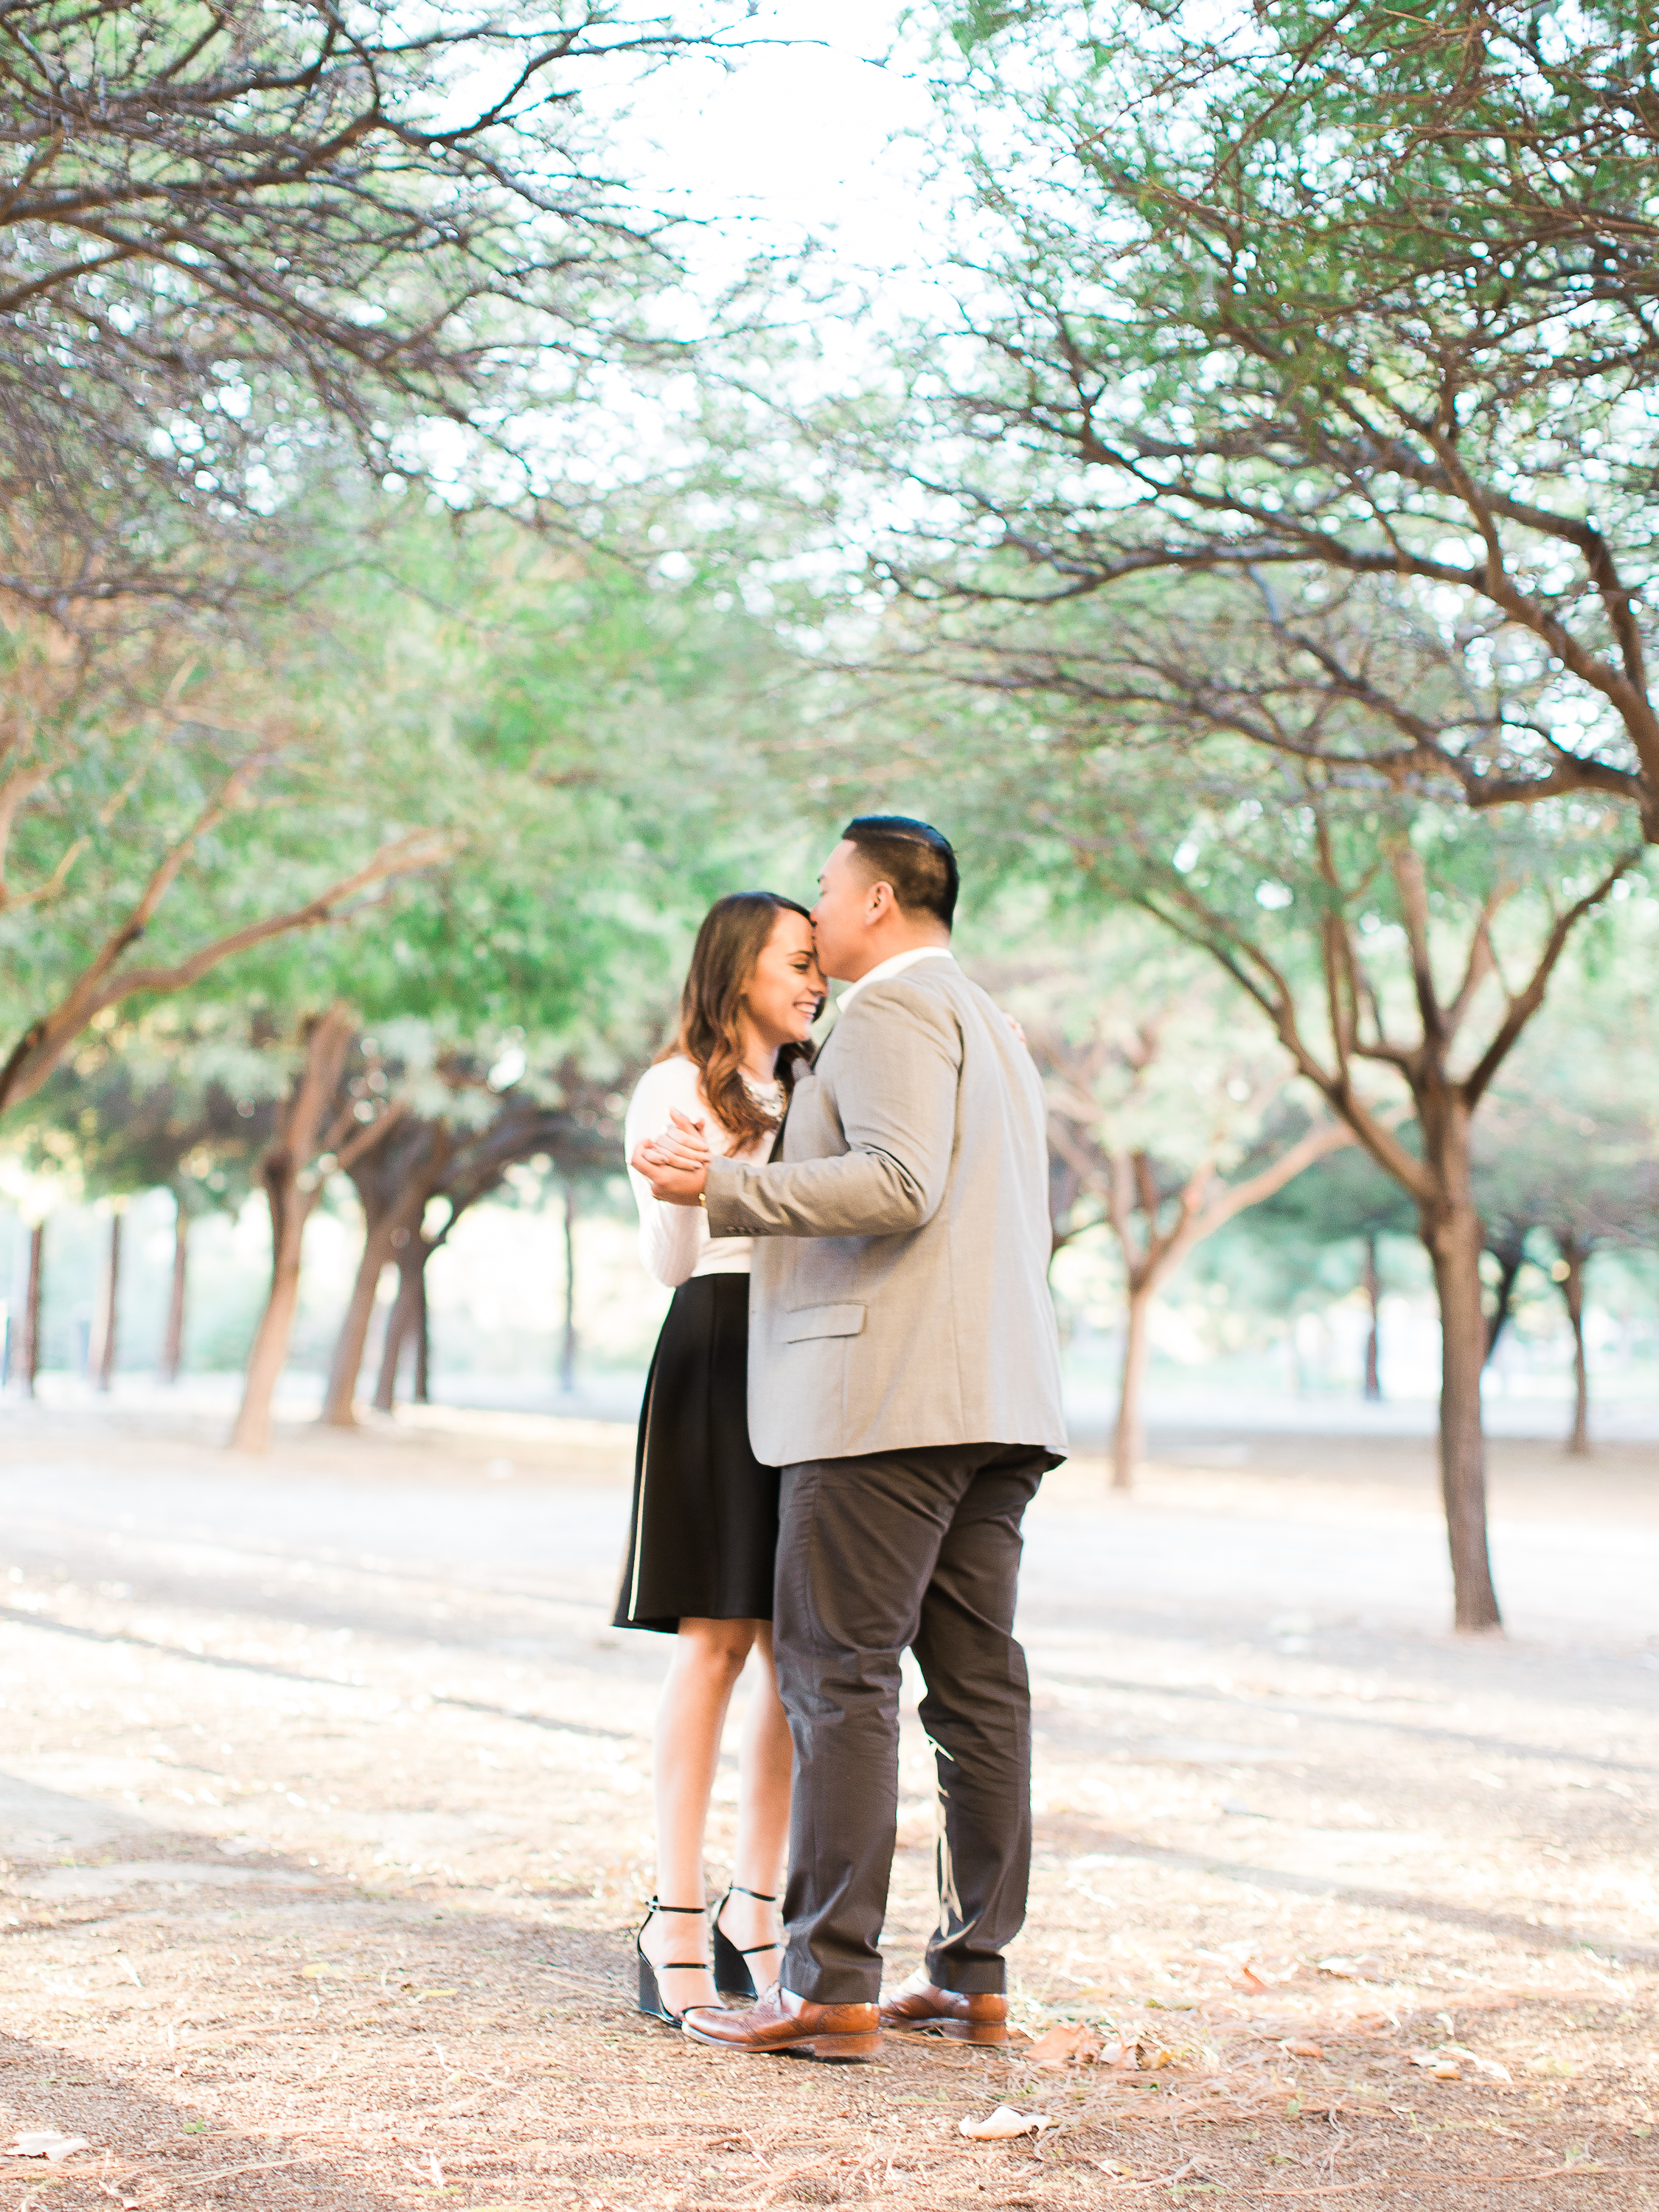 Klint and Yessy Engagement _ Brandon J Ferlin Photography-53.jpg